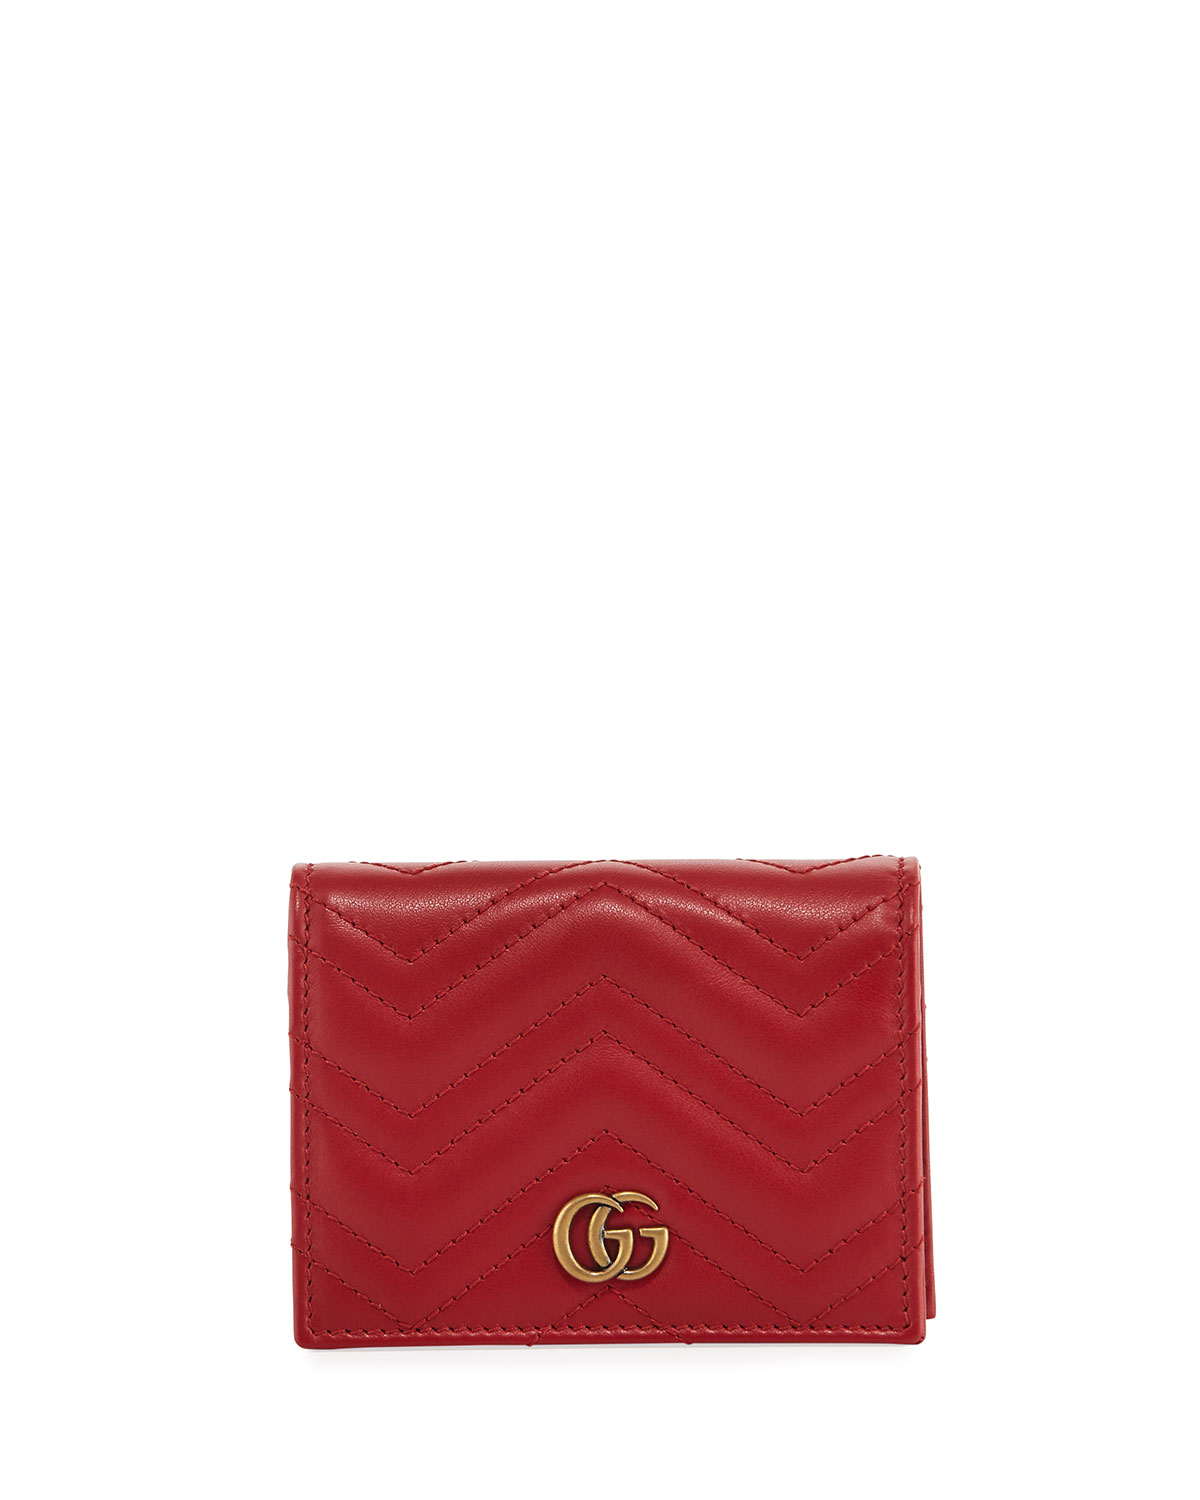 8f17c3d36fc Gucci GG Marmont Quilted Leather Flap Card Case